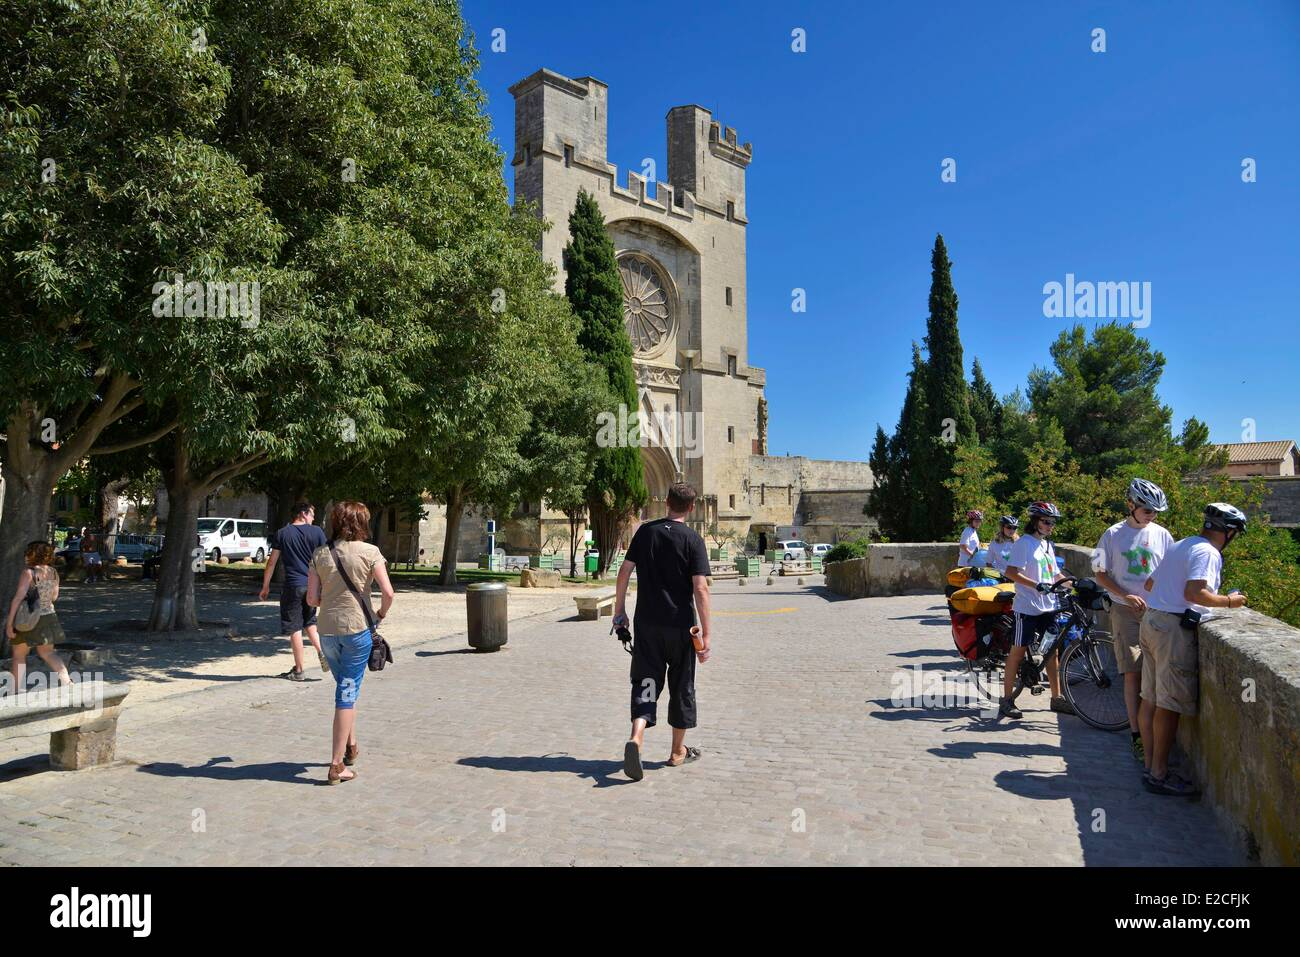 France, Herault, Beziers, public garden Saint Jacques, walkers and touring cyclists along the belvedere with Cathedral - Stock Image